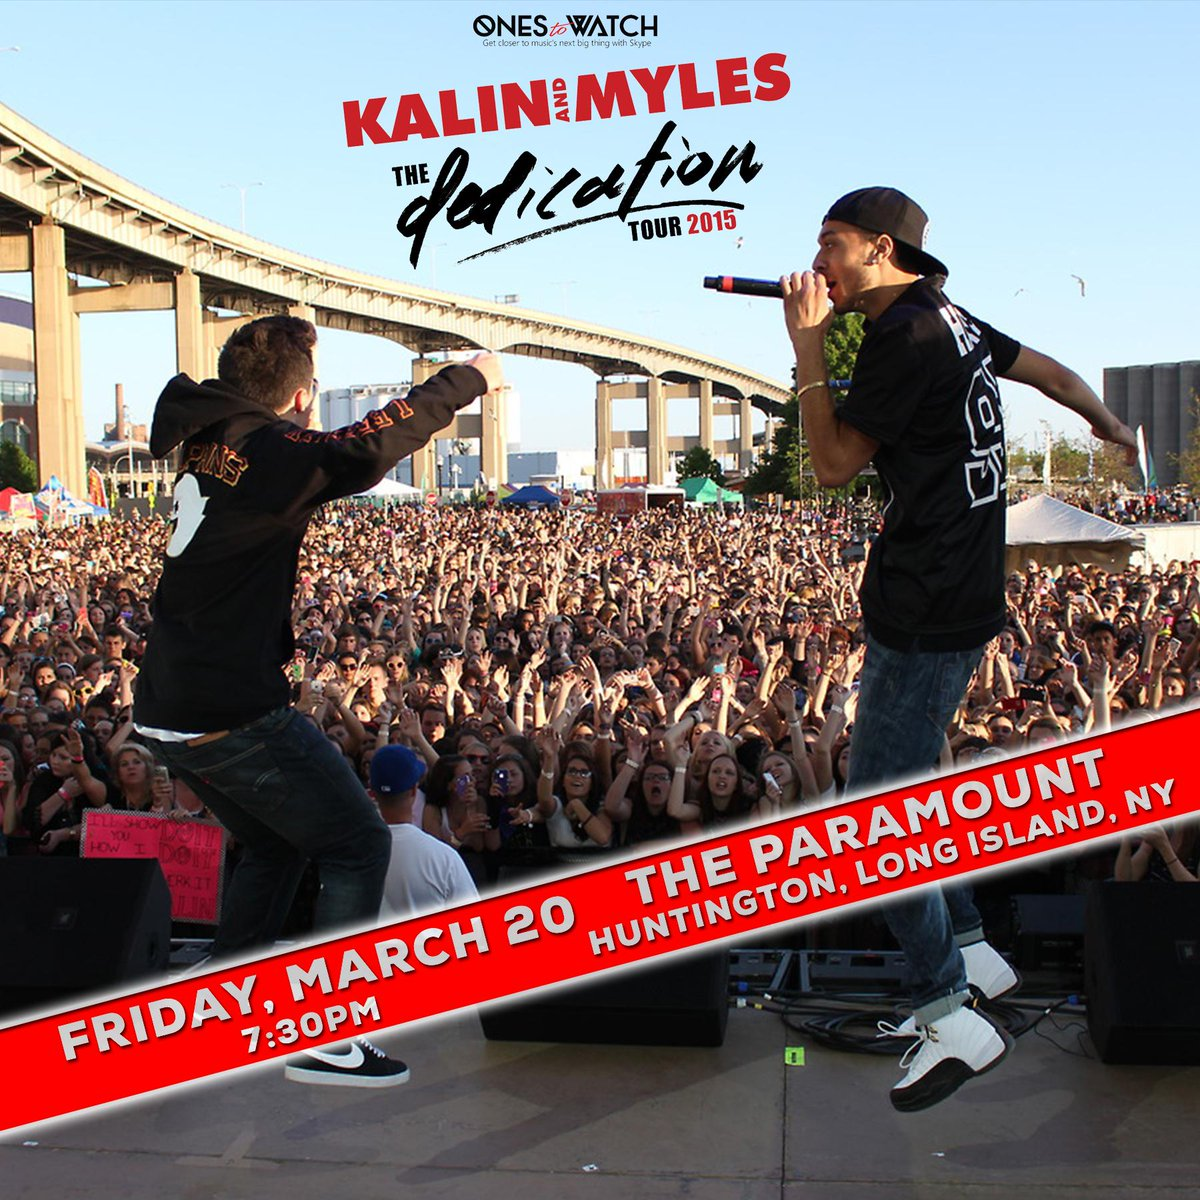 RETWEET for a chance to win 2 tickets to see @KalinAndMyles here this Friday! http://t.co/QQAihsU4AB